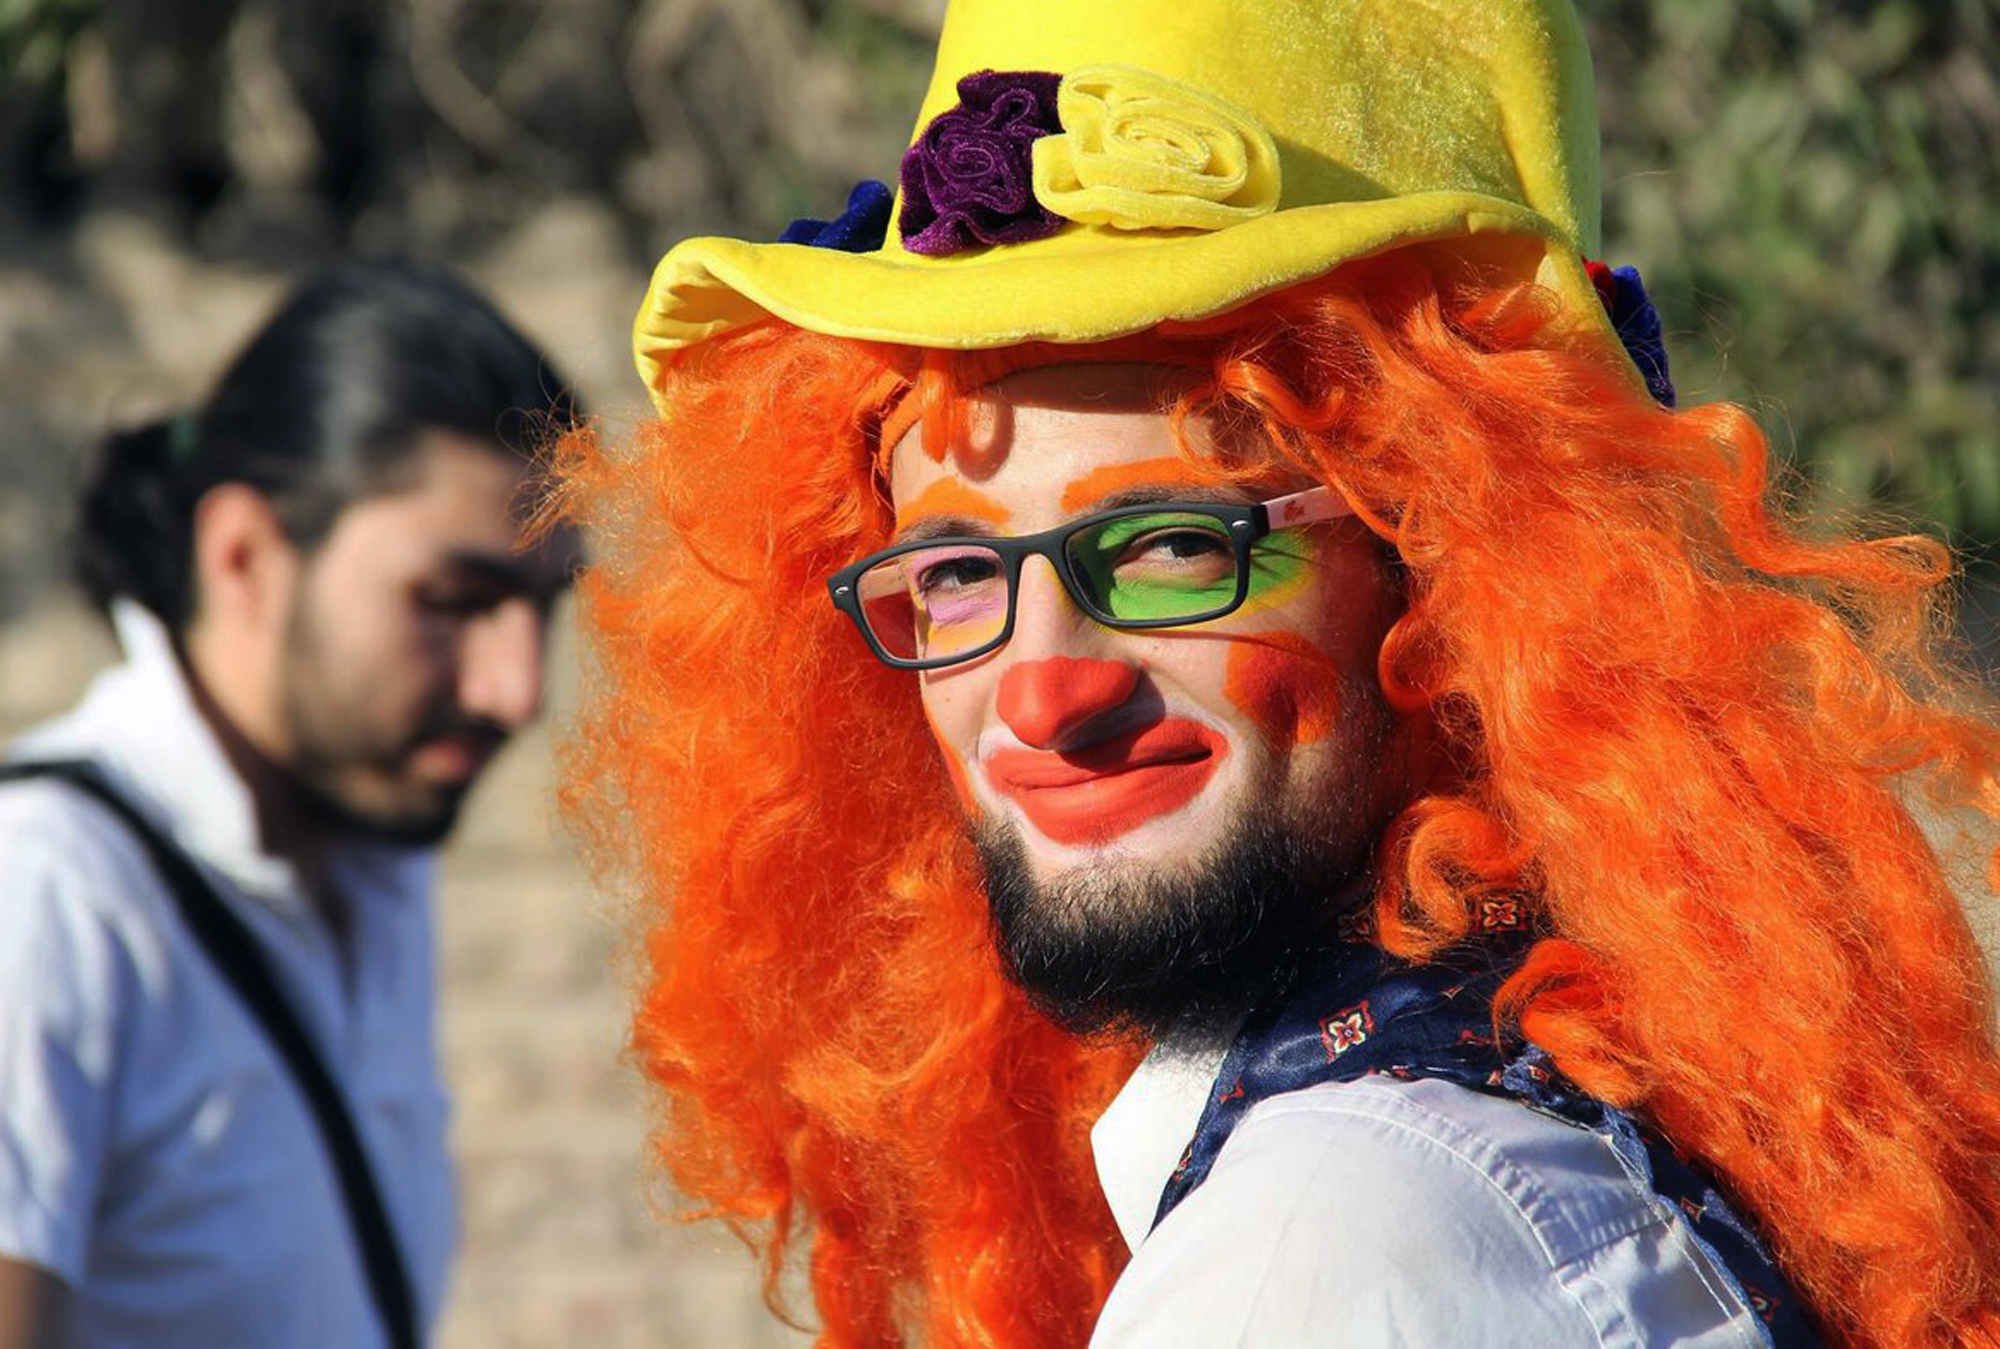 This undated photo courtesy of Ahmad al-Khatib, a media activist in Aleppo, shows Syrian social worker Anas al-Basha, 24, dressed as a clown, while posing for a photograph in Aleppo, Syria.